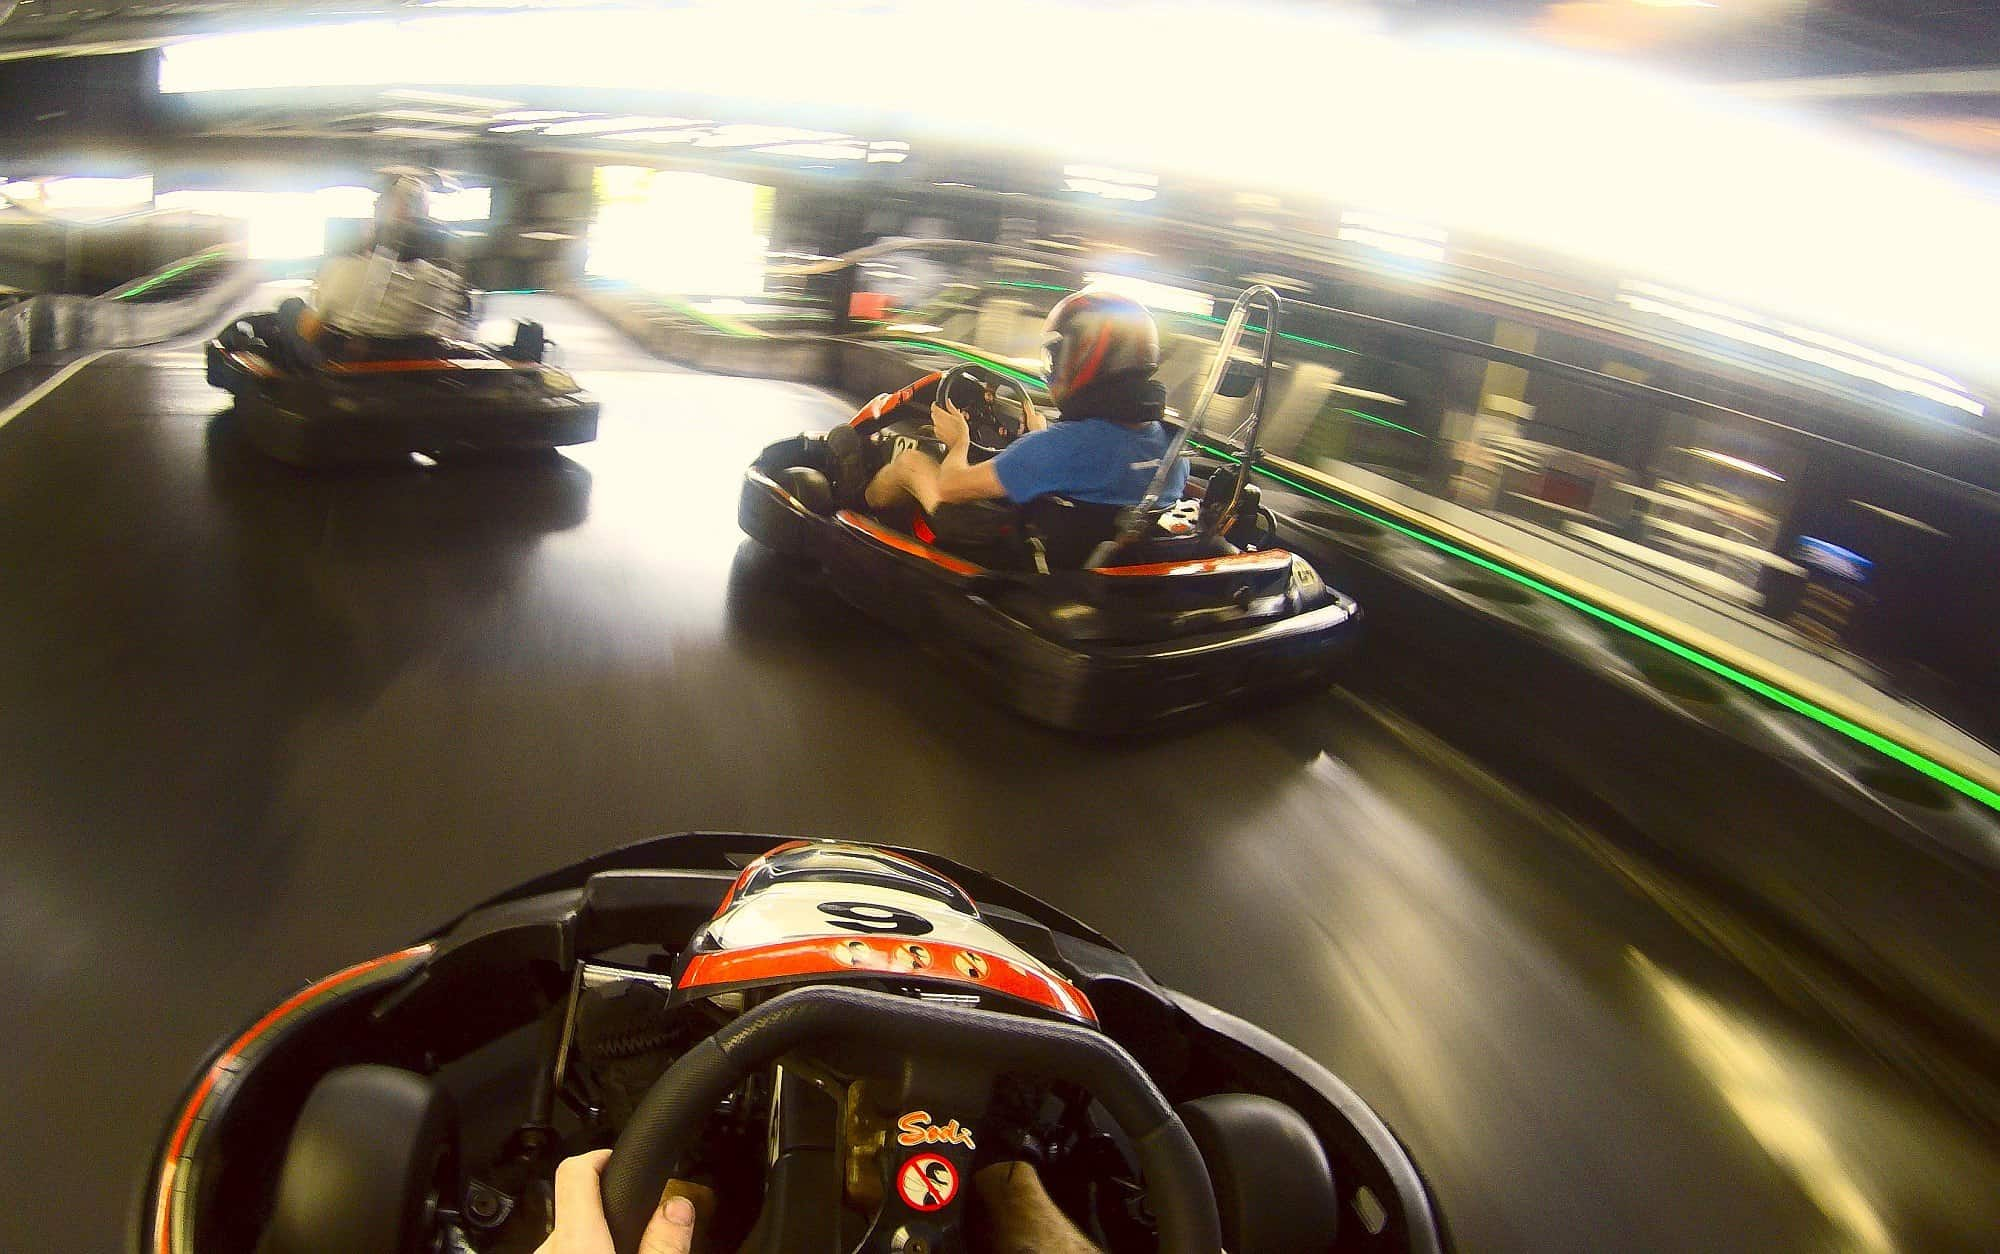 Drift karting is the ultimate indoor fun!